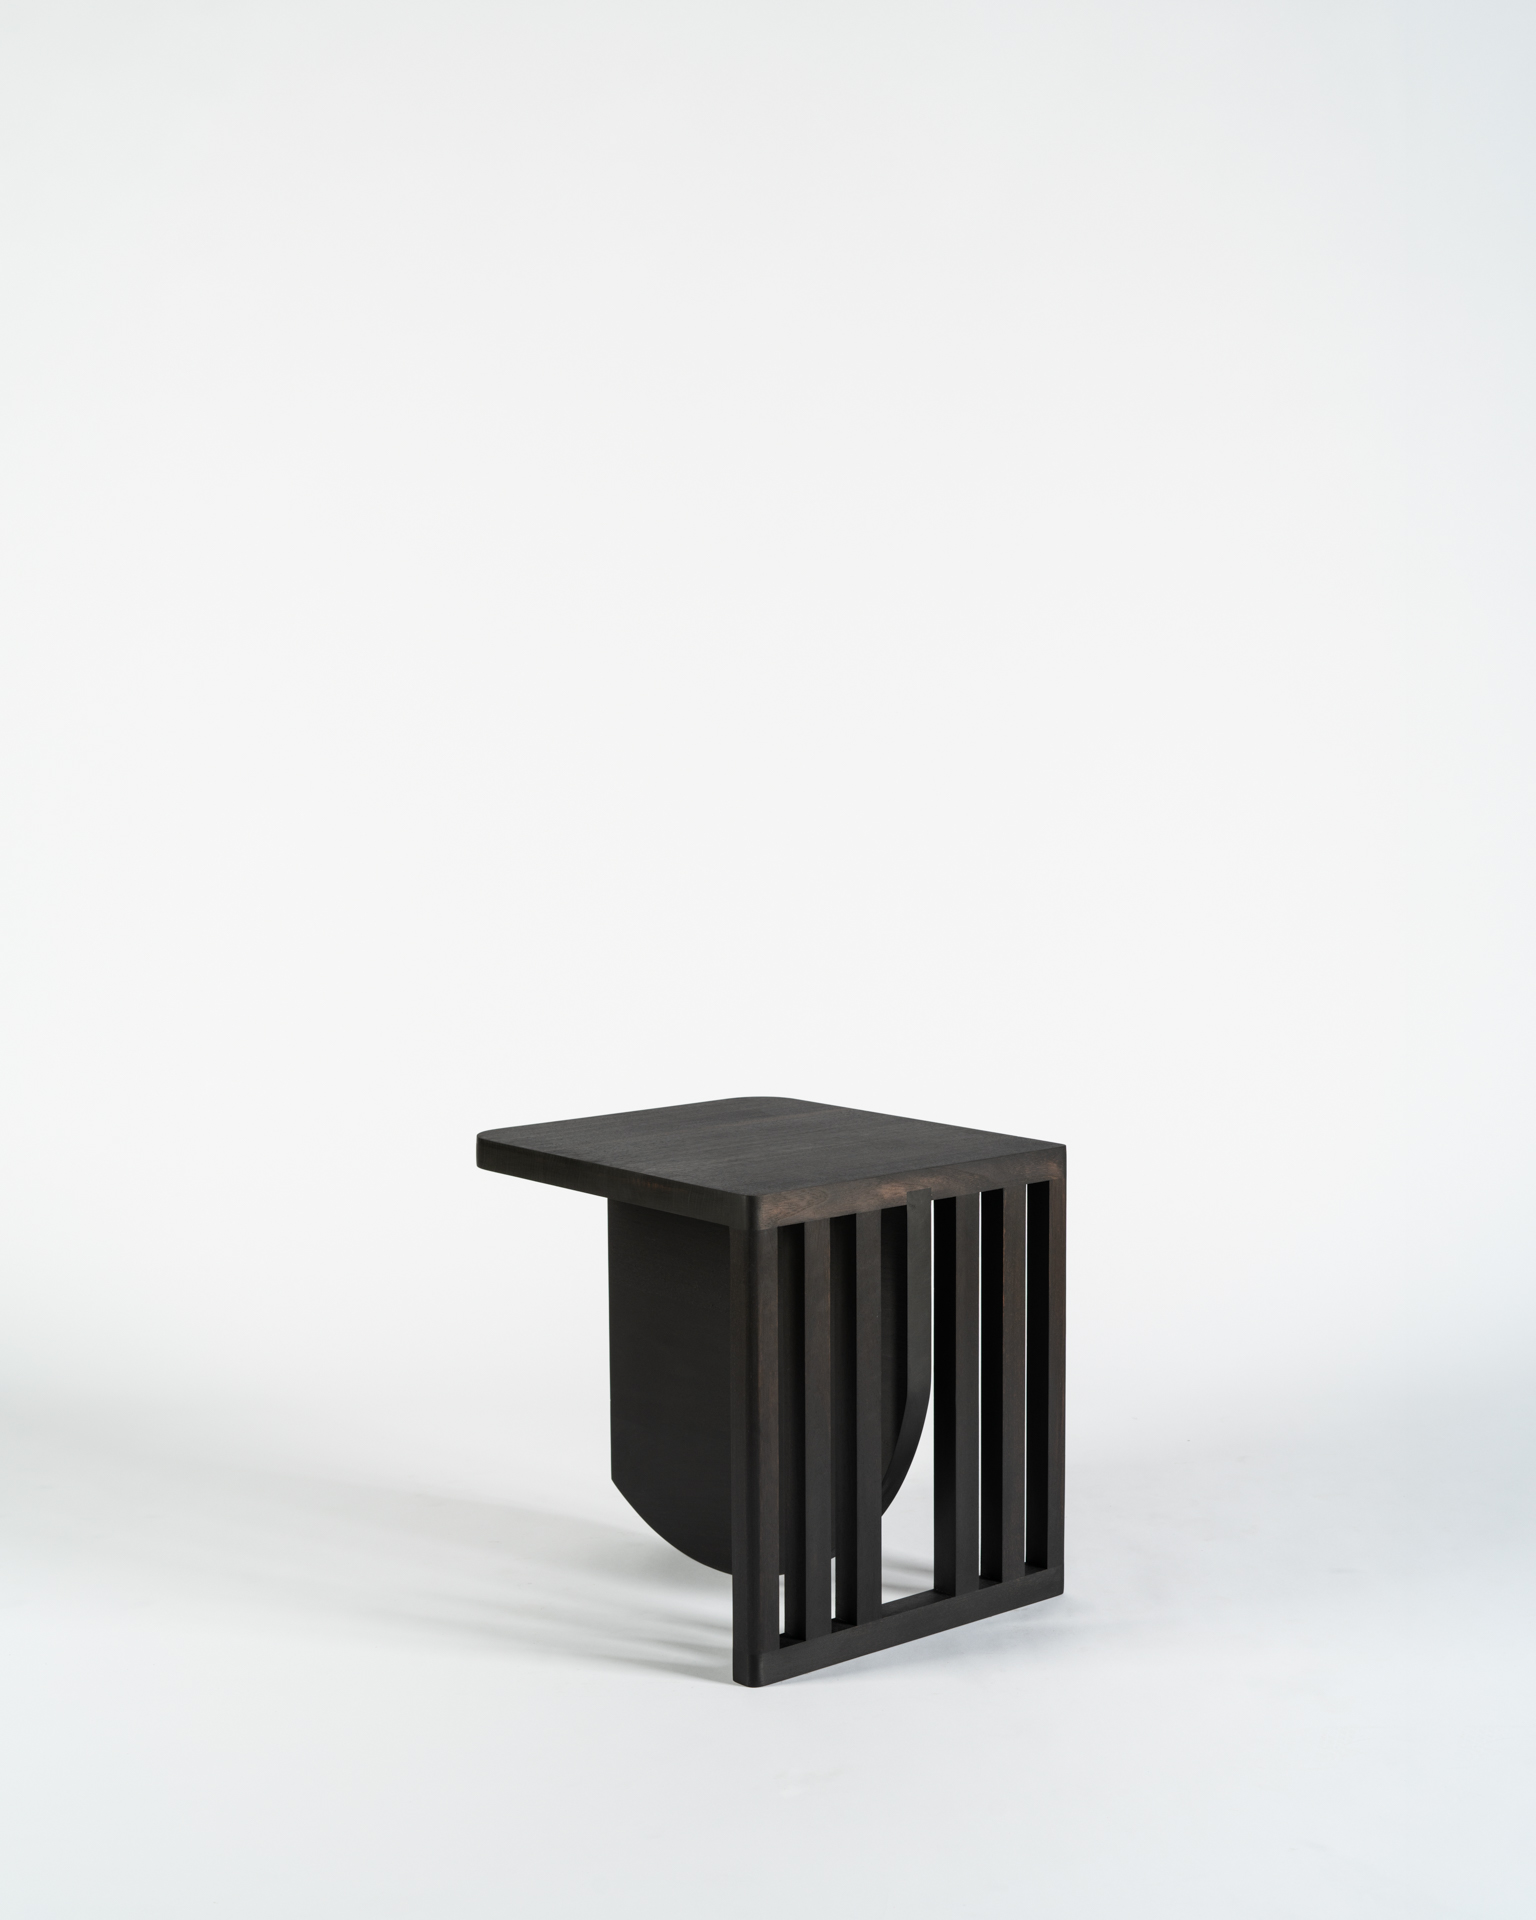 Furniture-web-15.jpg